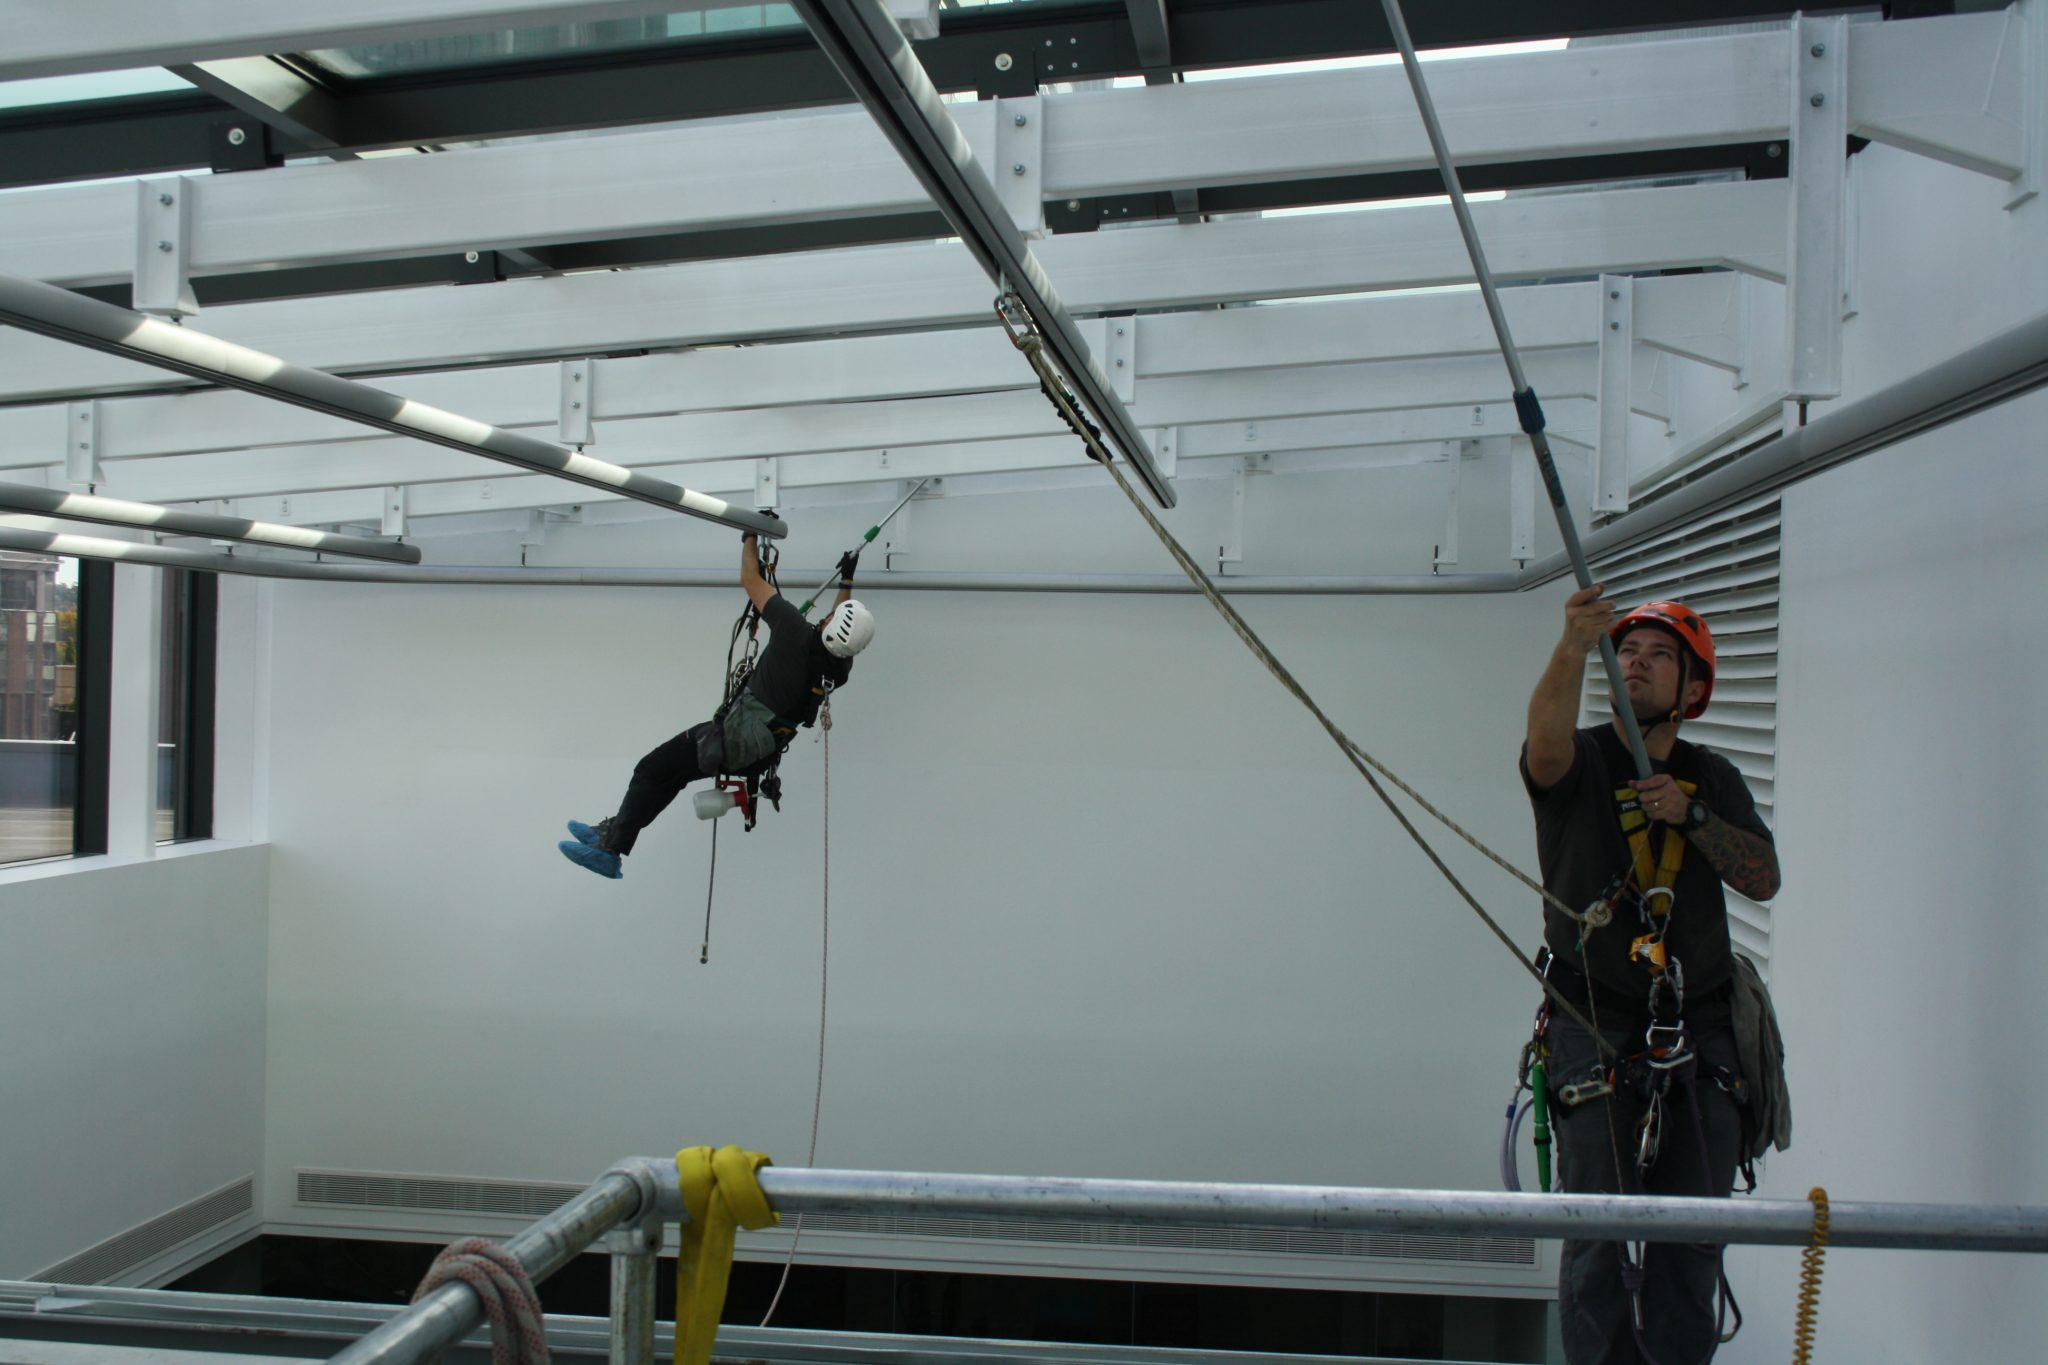 What does rope access training involve?